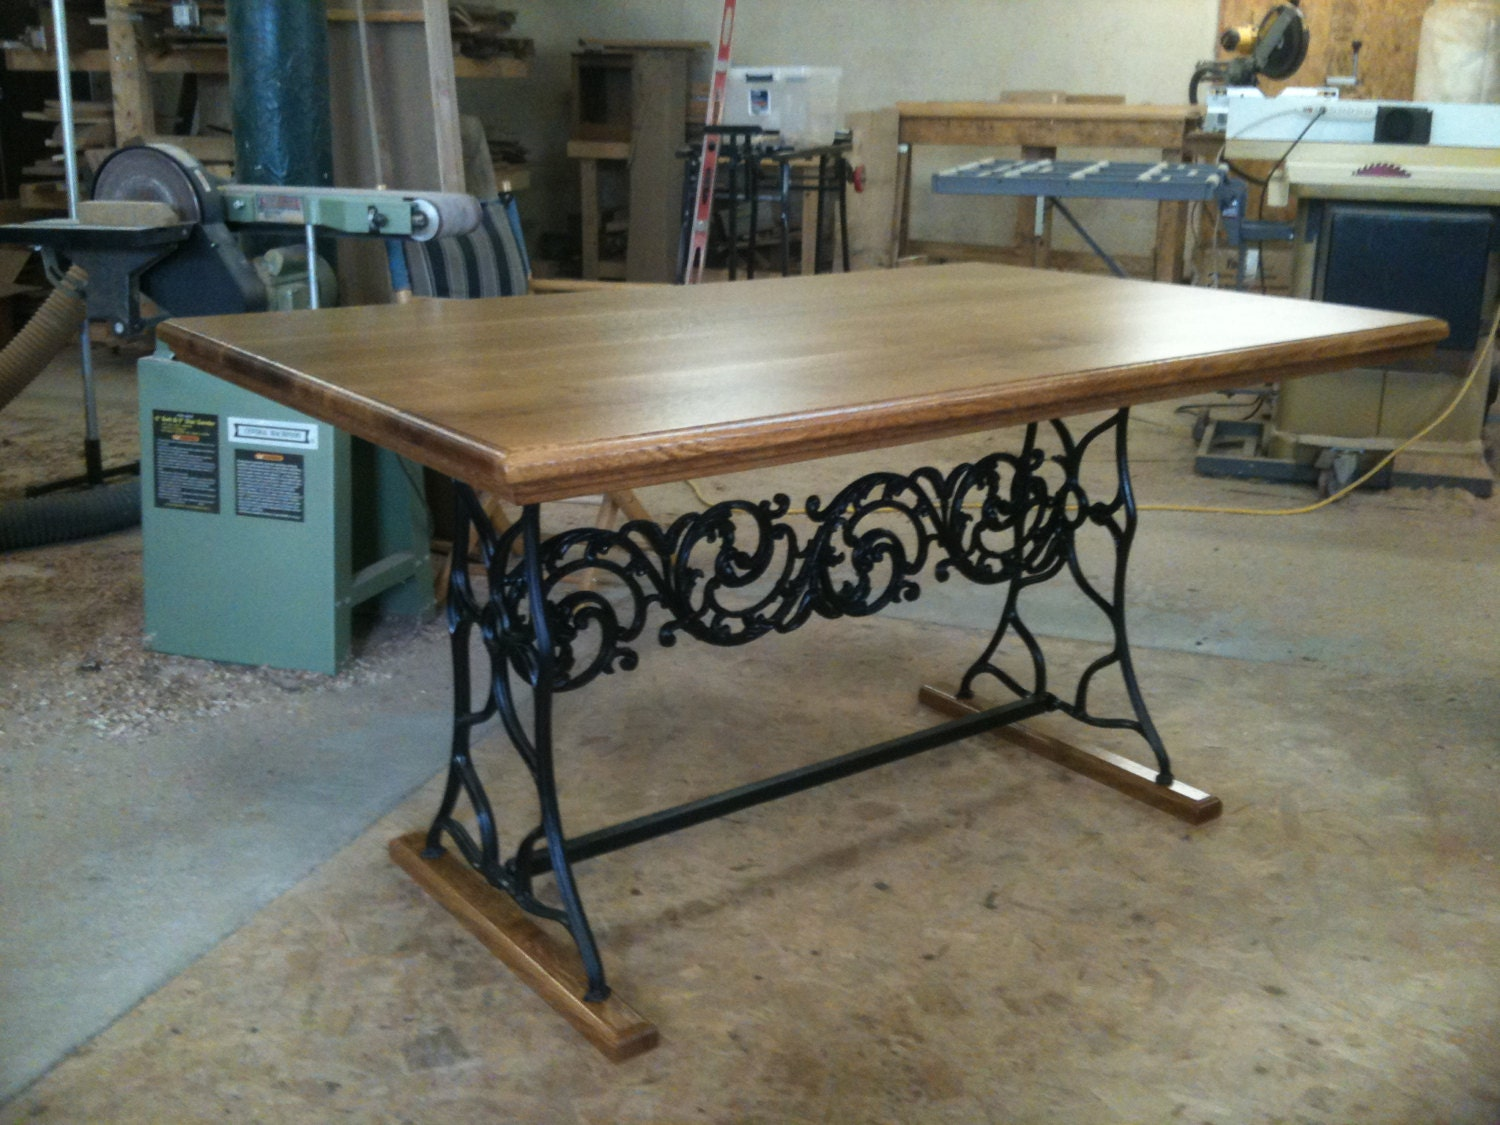 Custom oak and antique iron dining table : ilfullxfull704221378peet from www.etsy.com size 1500 x 1125 jpeg 332kB